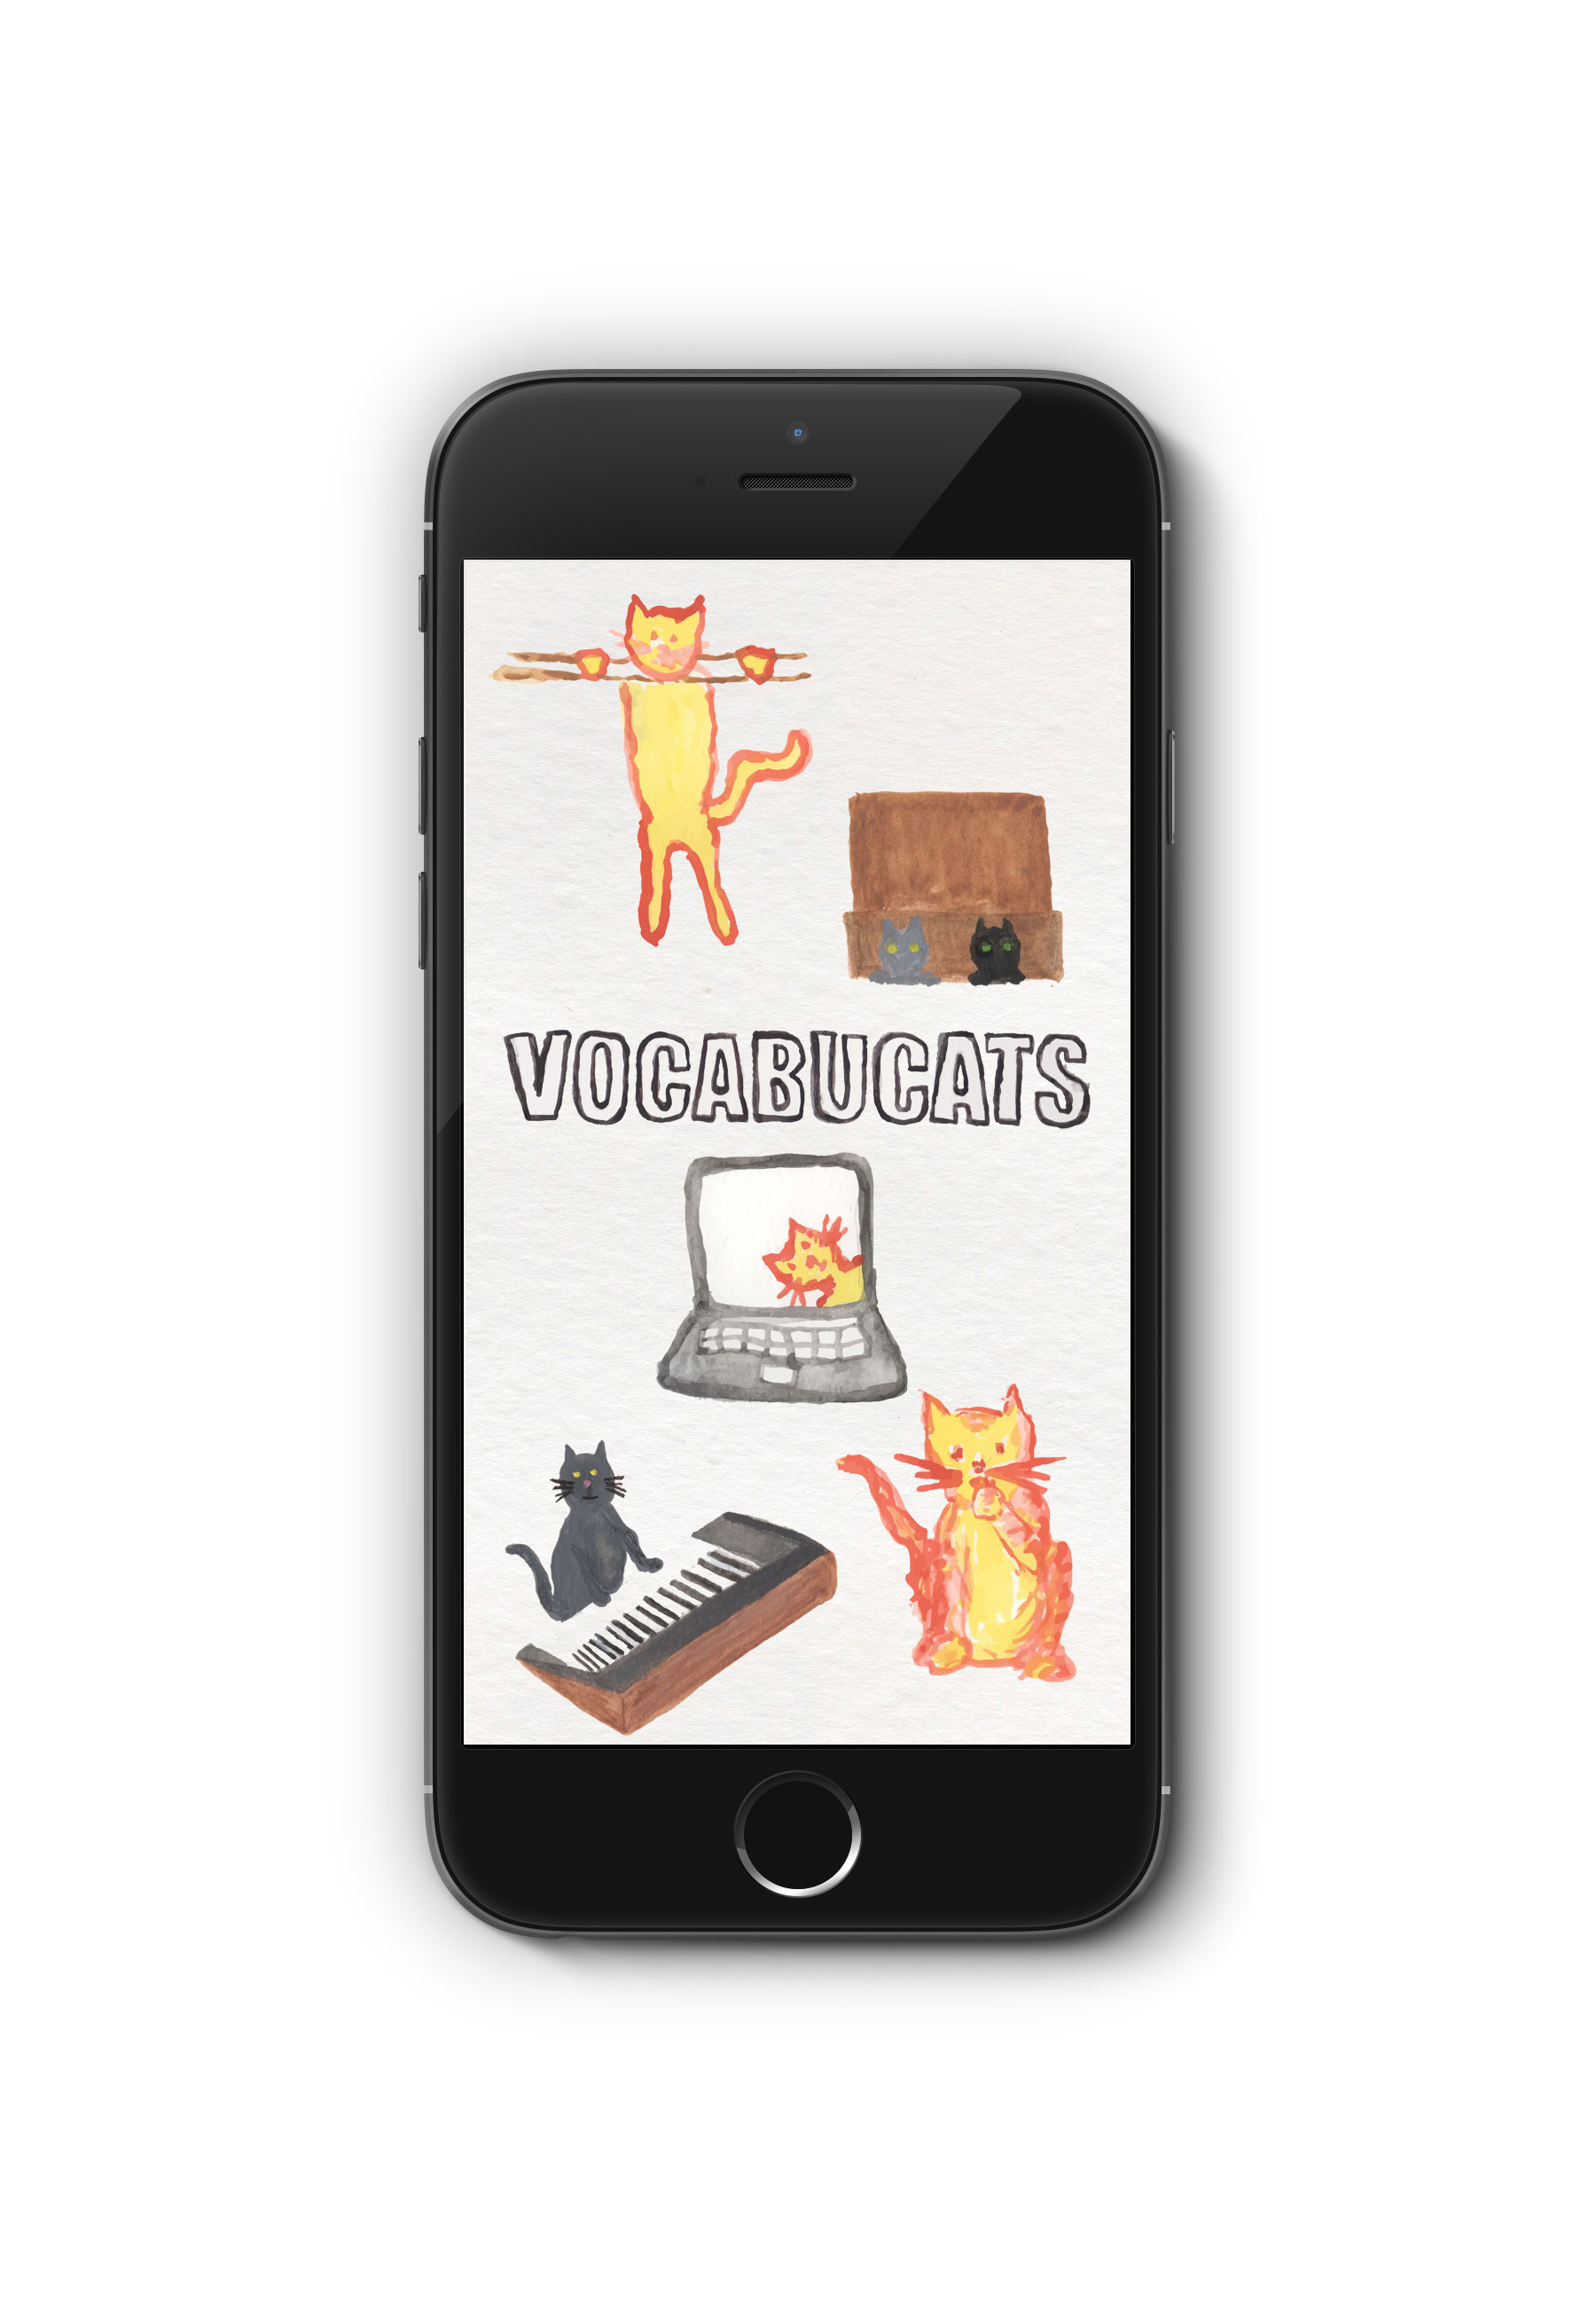 "See  the prototype for my e-learning app, Vocabucats. My instructional objective will be for students to learn an age-appropriate set of vocabulary words. My secondary instructional goal is for children to want to learn more because they enjoy the process. My mobile app will achieve this by ""game-ifying"" the process of learning. The app will cultivate an active, playful, and competitive mindset in the student as much as possible. Students will not only reach vocabulary goals, but have fun doing it. It will be used in the familiar context of the mobile device (whether phone or tablet), something children associate with play. I have observed that parents often allow children to borrow their mobile devices to distract them in boring or difficult situations, or as a special privilege. Kids love getting to play Angry Birds and other games on their parents' devices. This time, instead begging to play another level of Angry Birds, they'll be begging to try to beat another level of the vocabulary game."